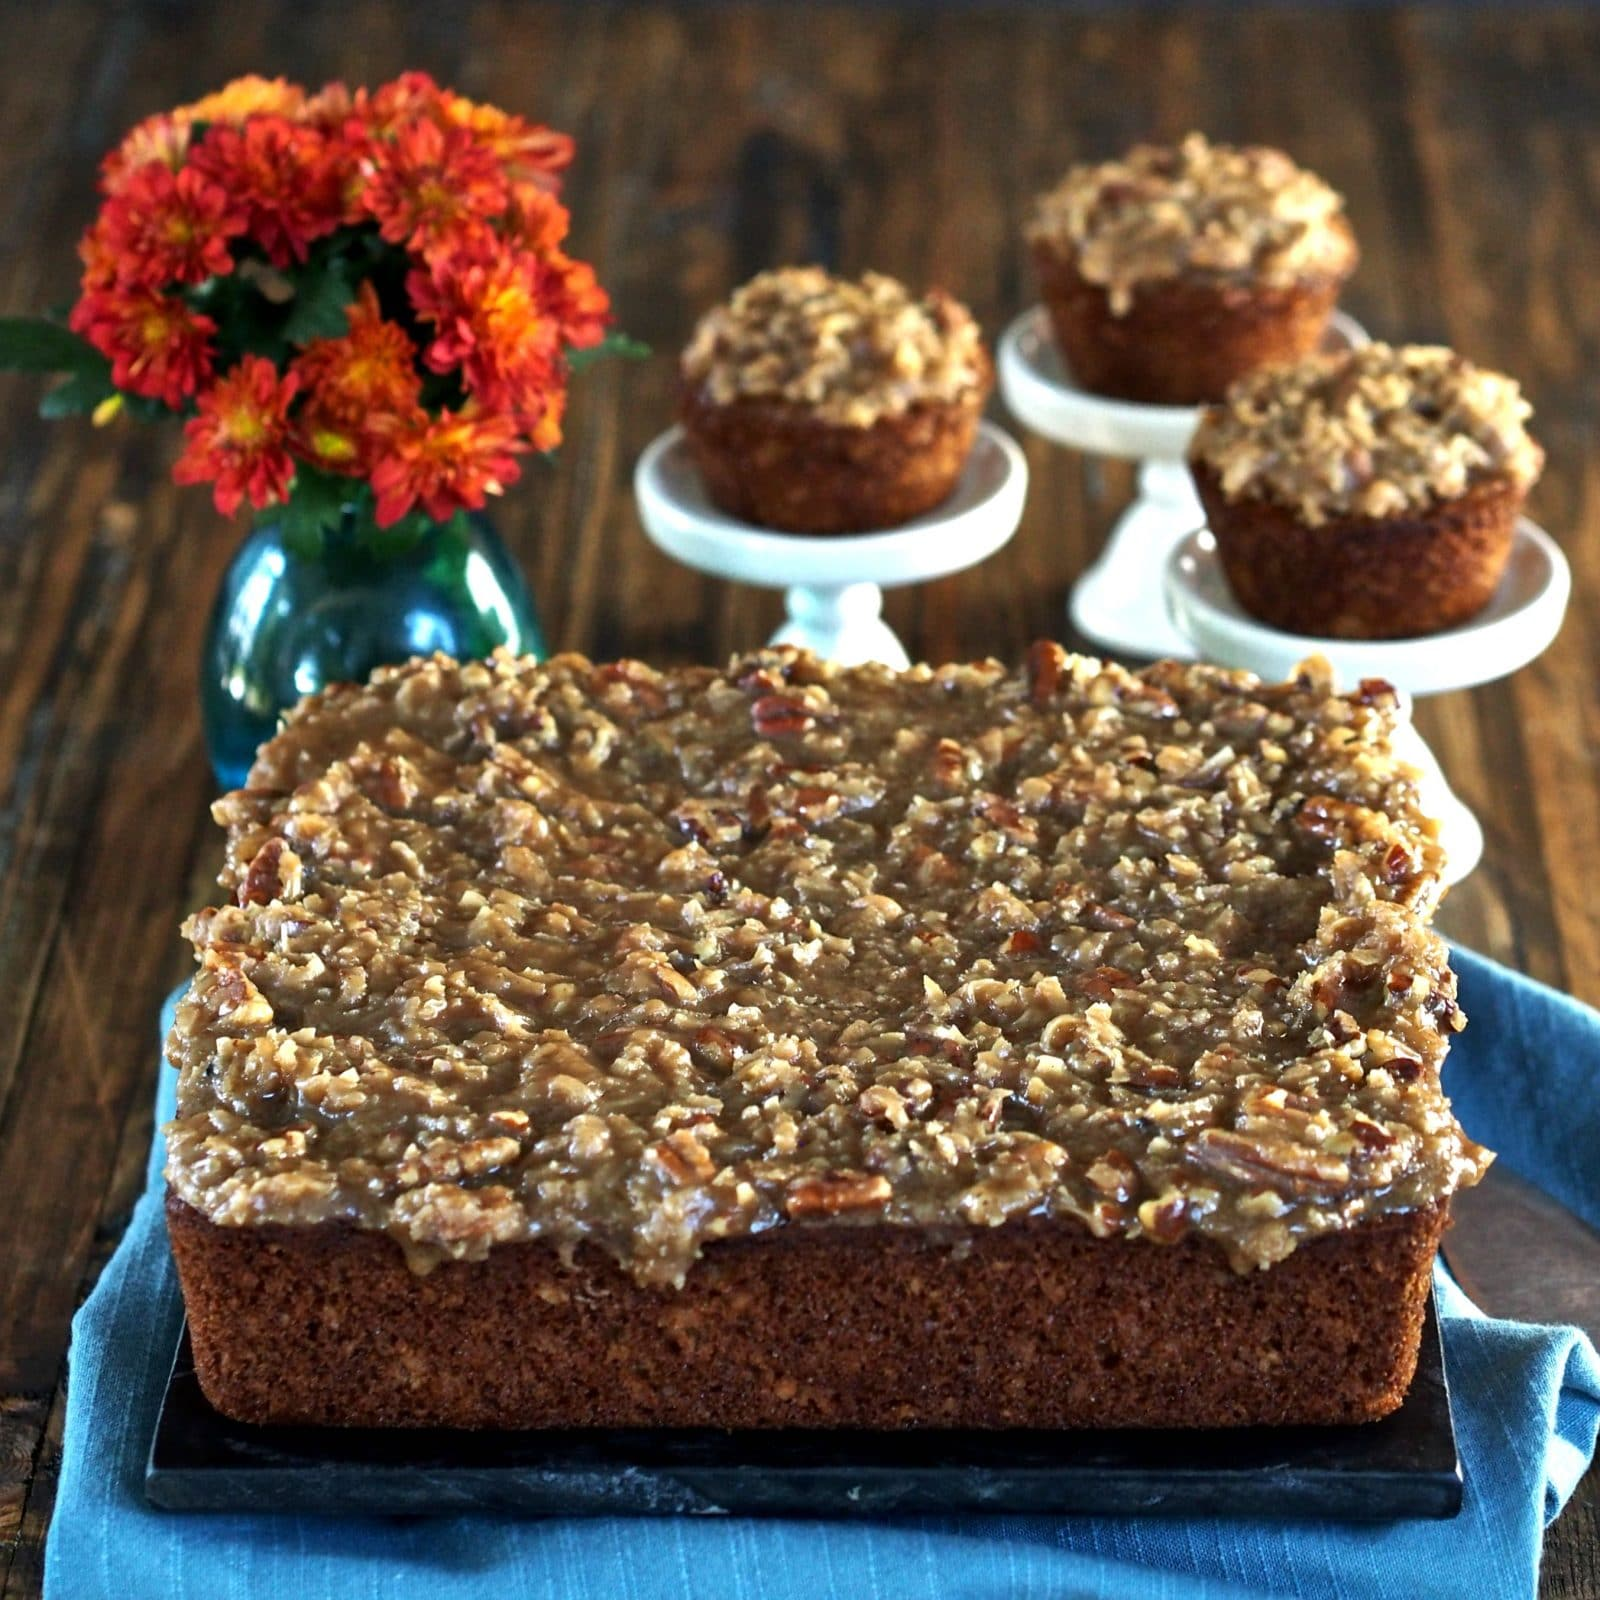 Old-Fashioned Oatmeal Cake & Cupcakes with Coconut Pecan Frosting. Moist, fall-spiced cake packed with flavor & topped, while warm, with perfect frosting. Simply Sated